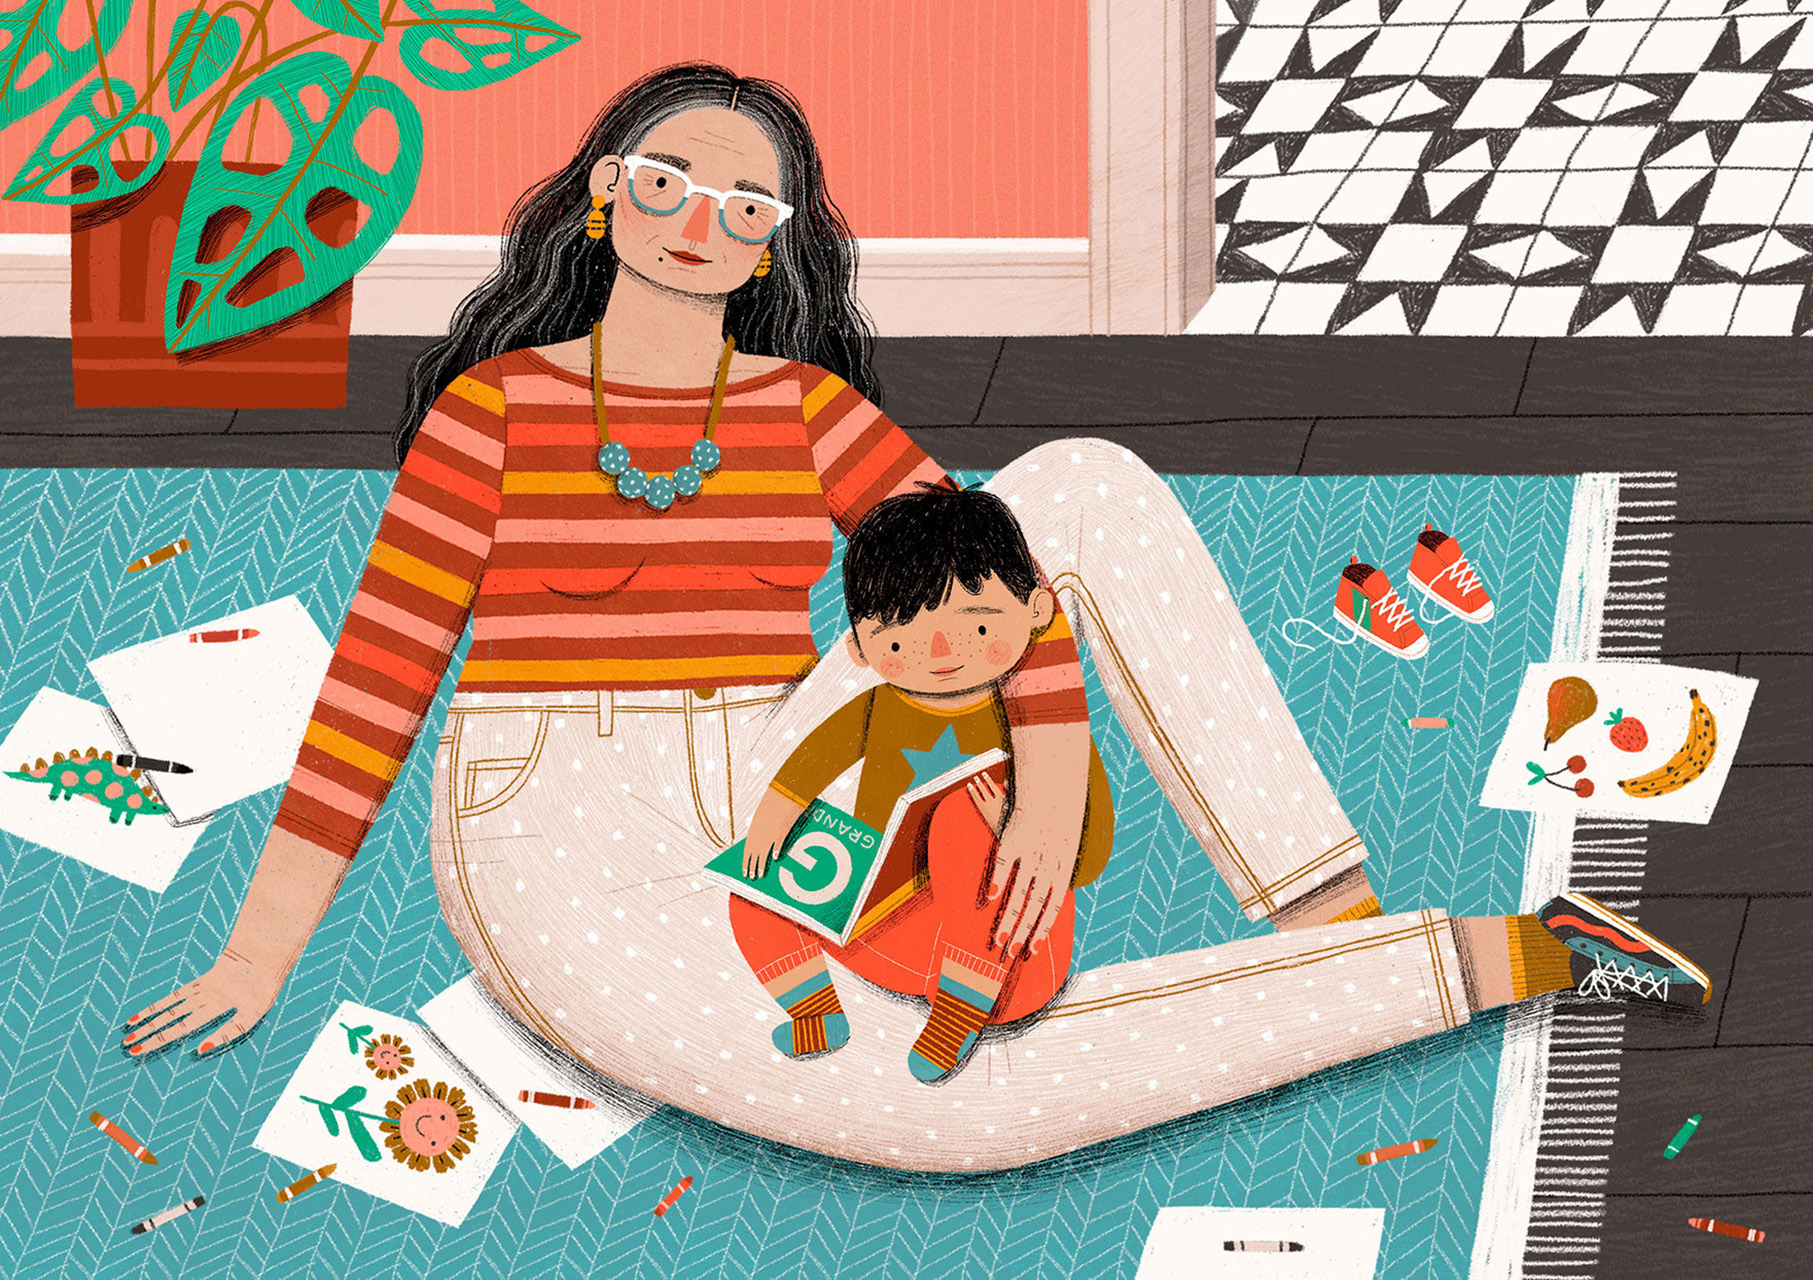 grandmother reading to child illustration